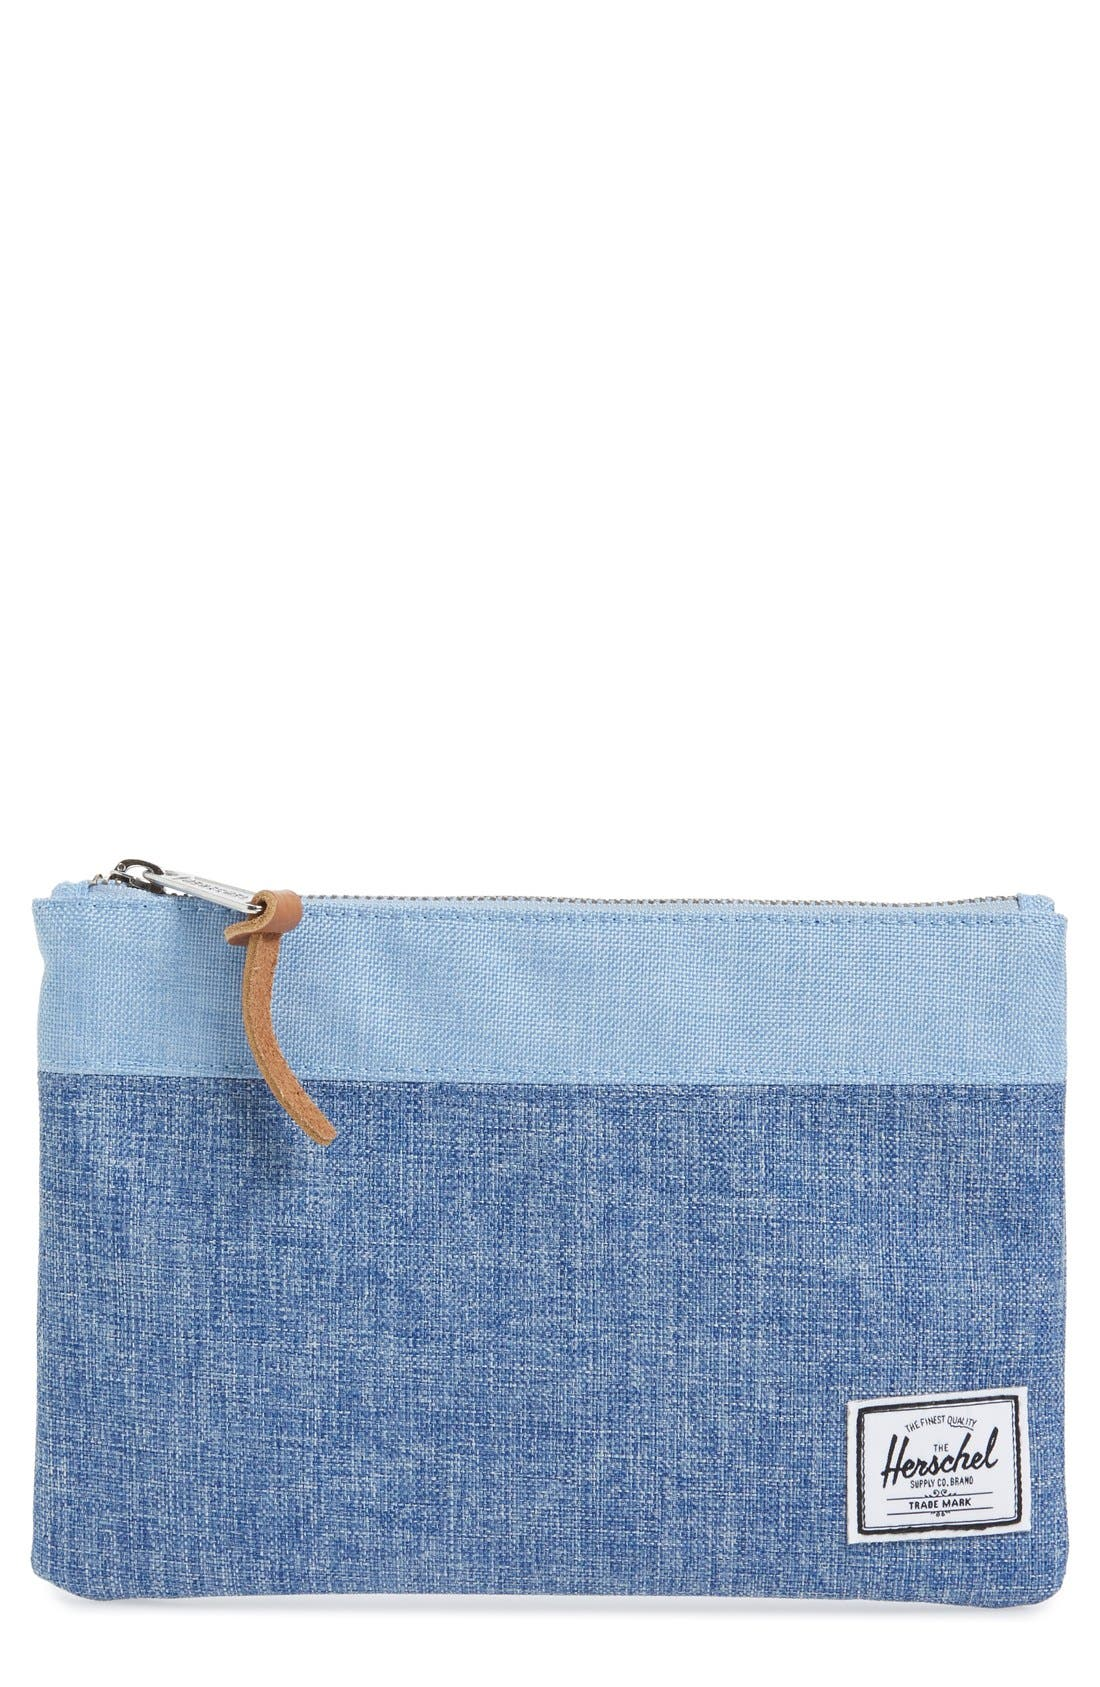 Alternate Image 1 Selected - Herschel Supply Co. 'Field' Pouch